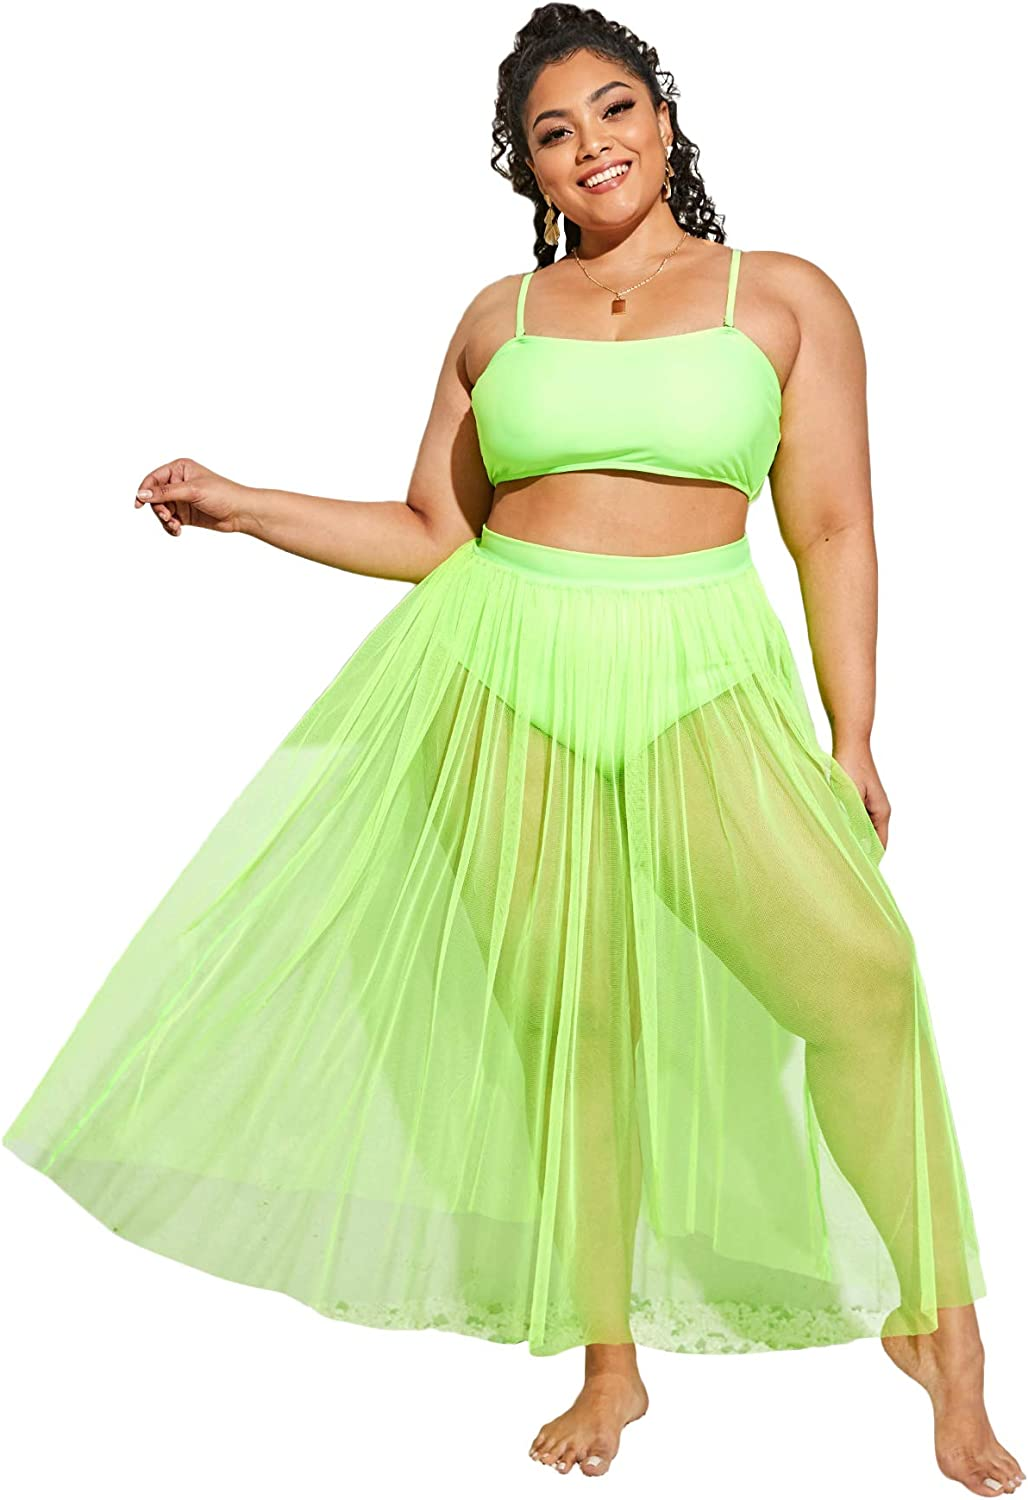 SOLY HUX Women's Plus Size High Waisted Bikini Bathing Suits with Cover Up 3 Piece Swimsuits